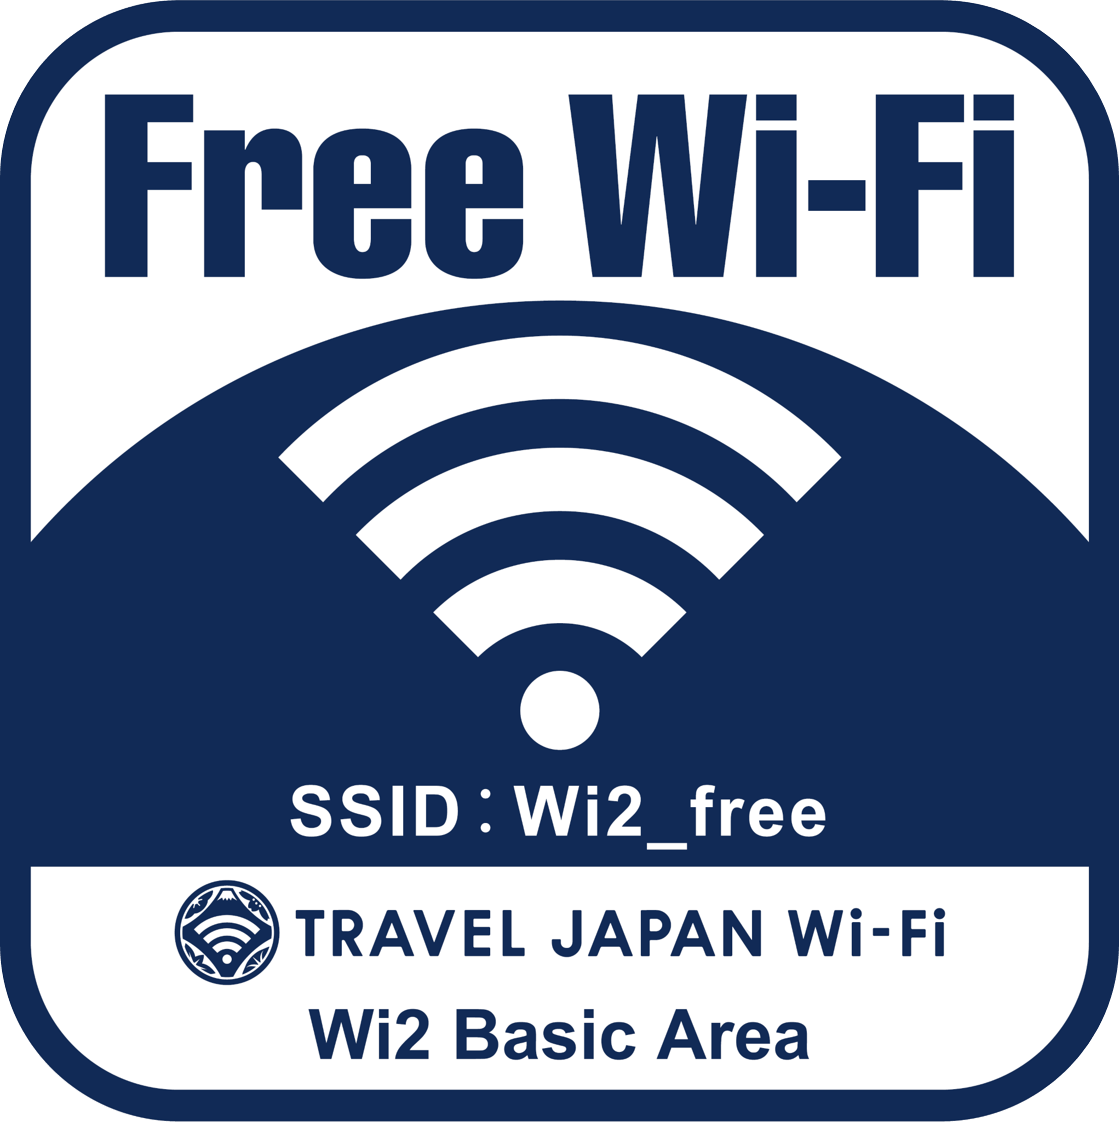 TRAVEL JAPAN Wi-Fi